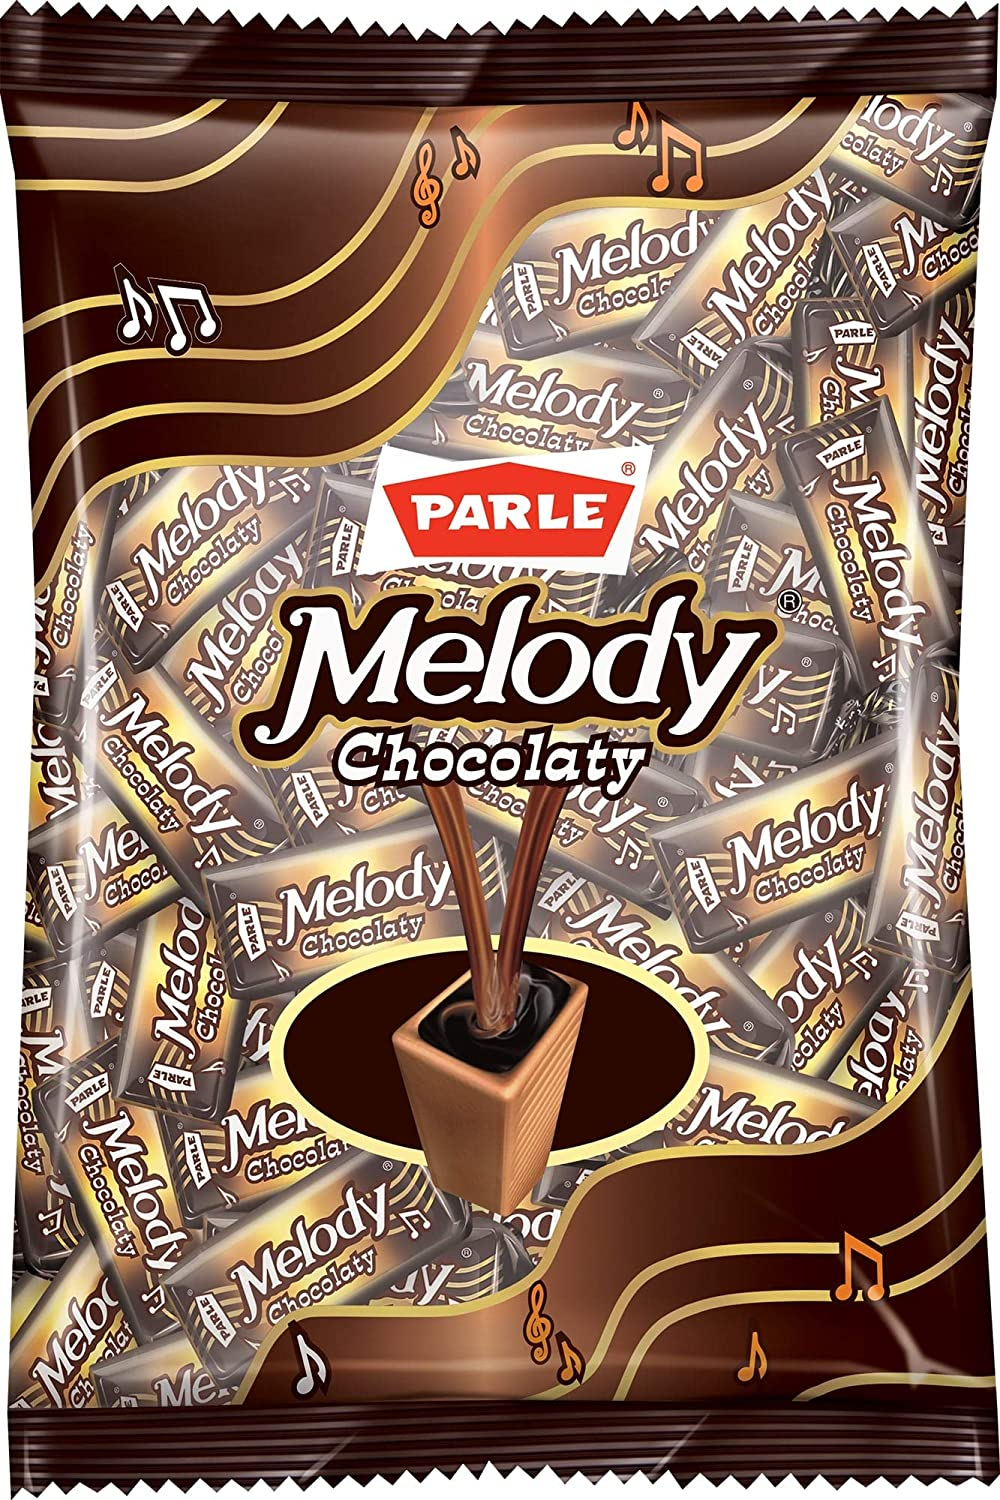 PARLE MELODY CHOCOLATY 195.5G